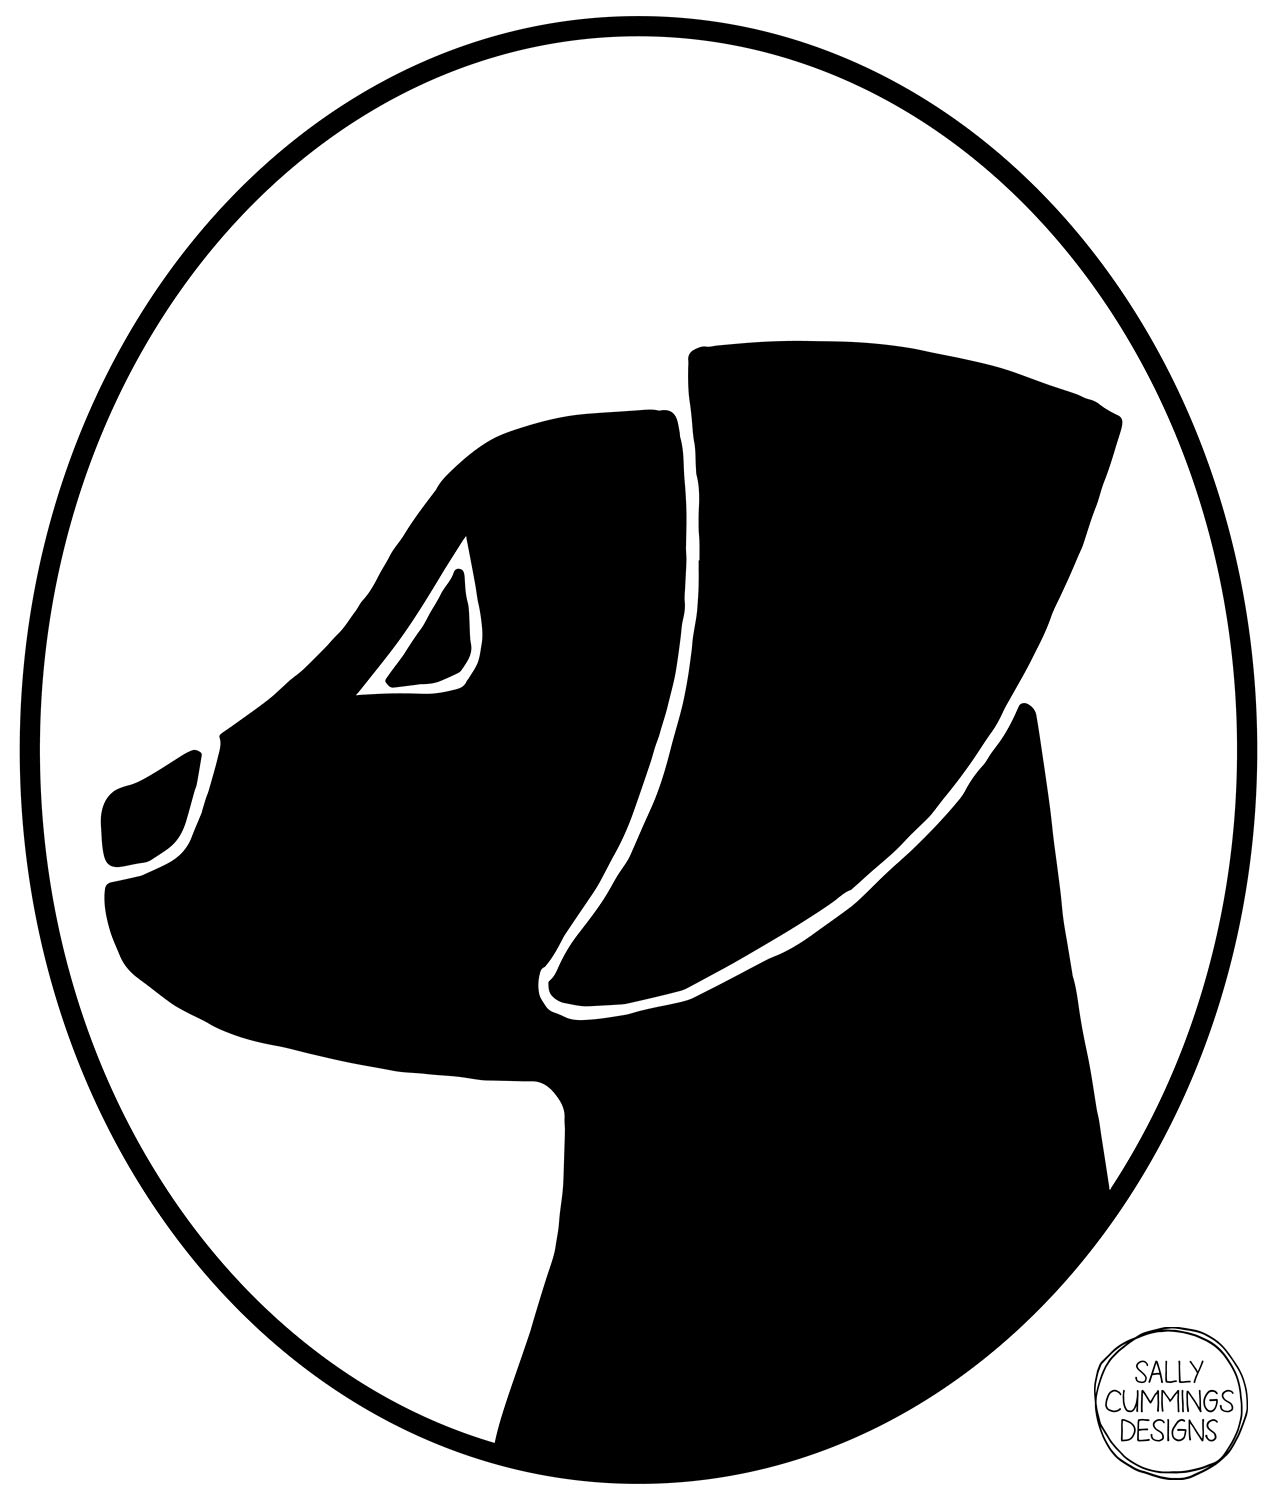 Sally Cummings Designs - Dog Cameo Oval 1 (Labrador Pup)